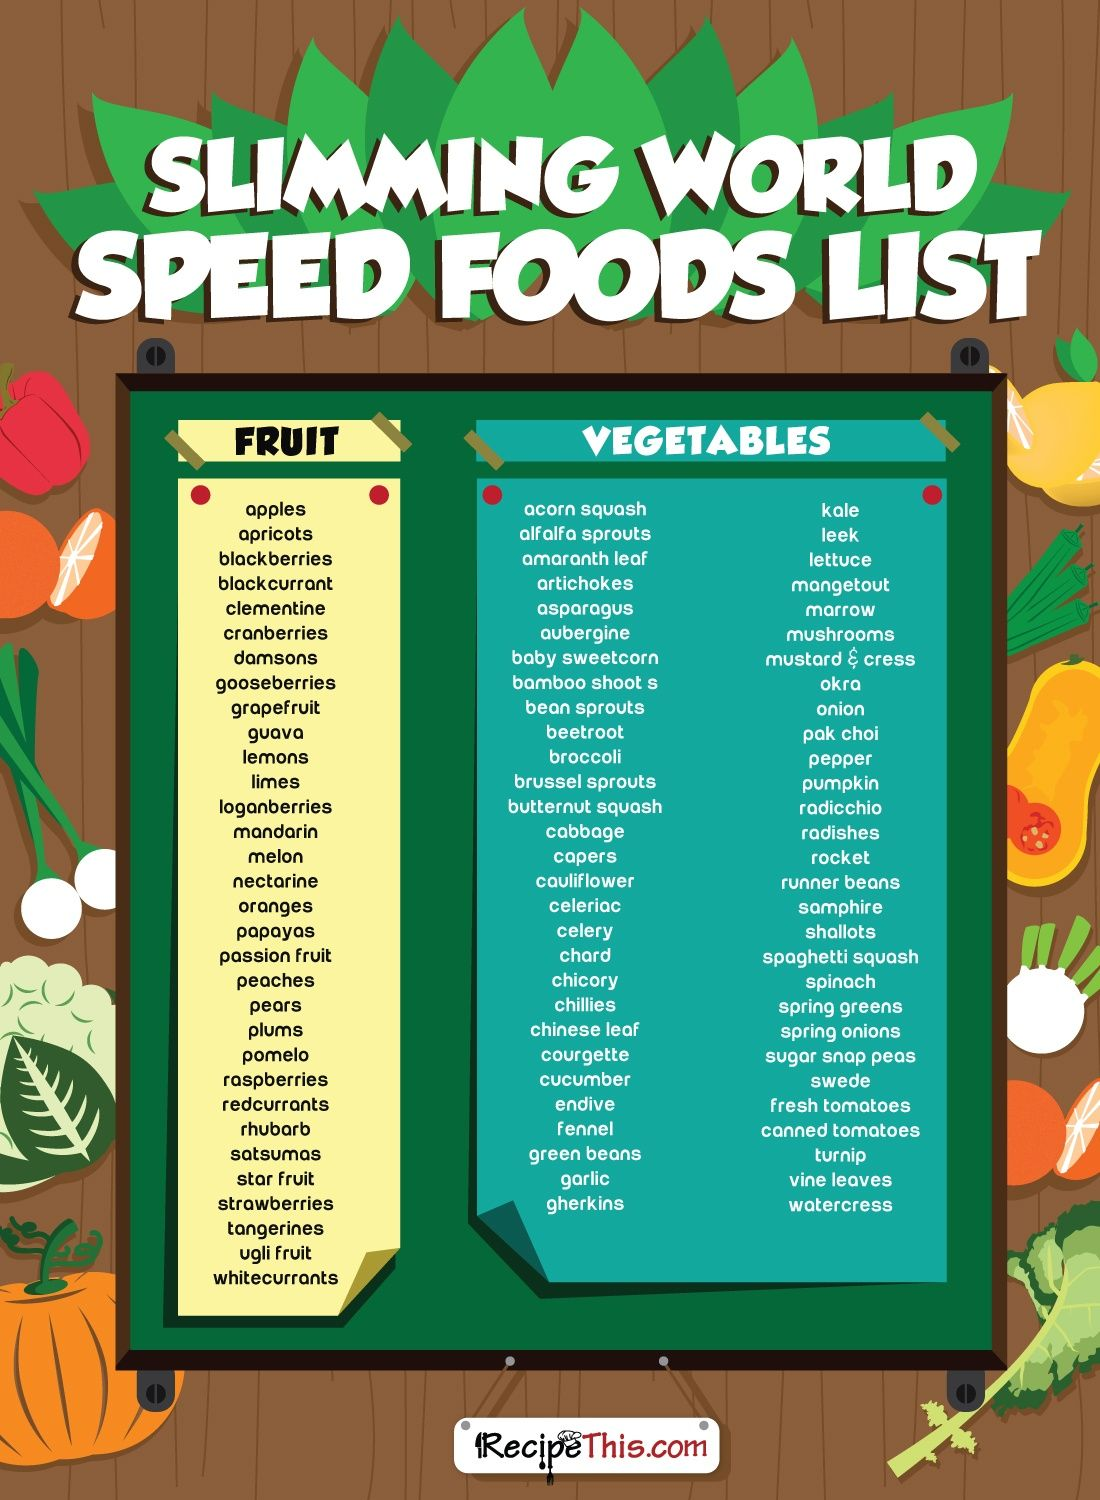 Slimming World What Is Slimming World Speed Foods From